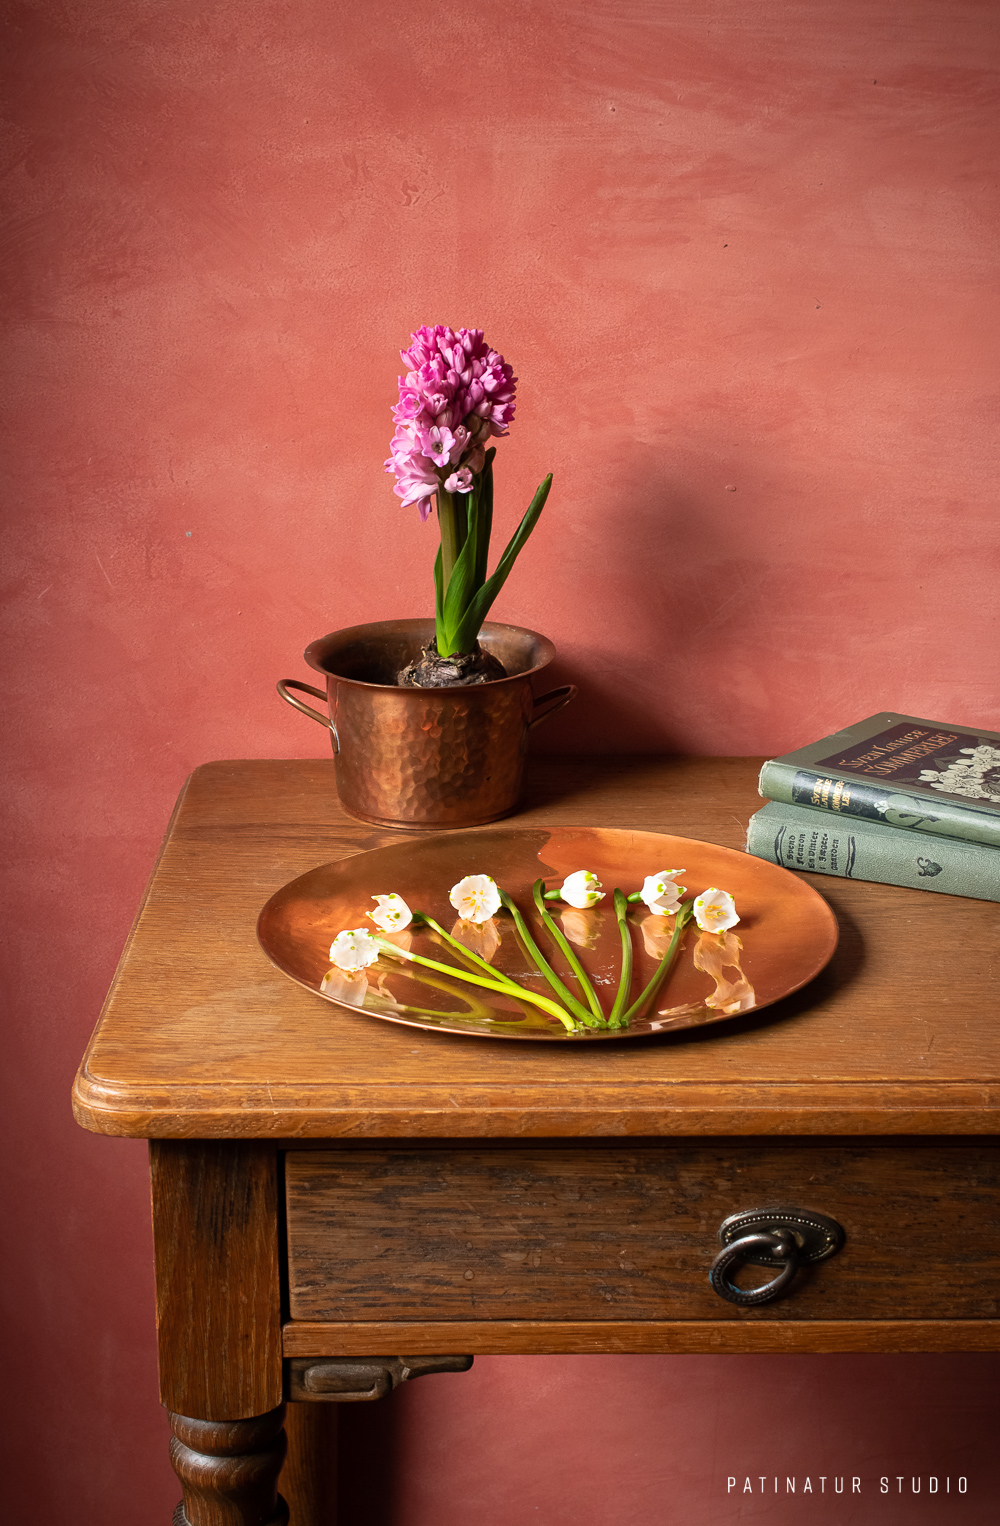 Still life photo with spring snowflakes, hyacinth and vintage books